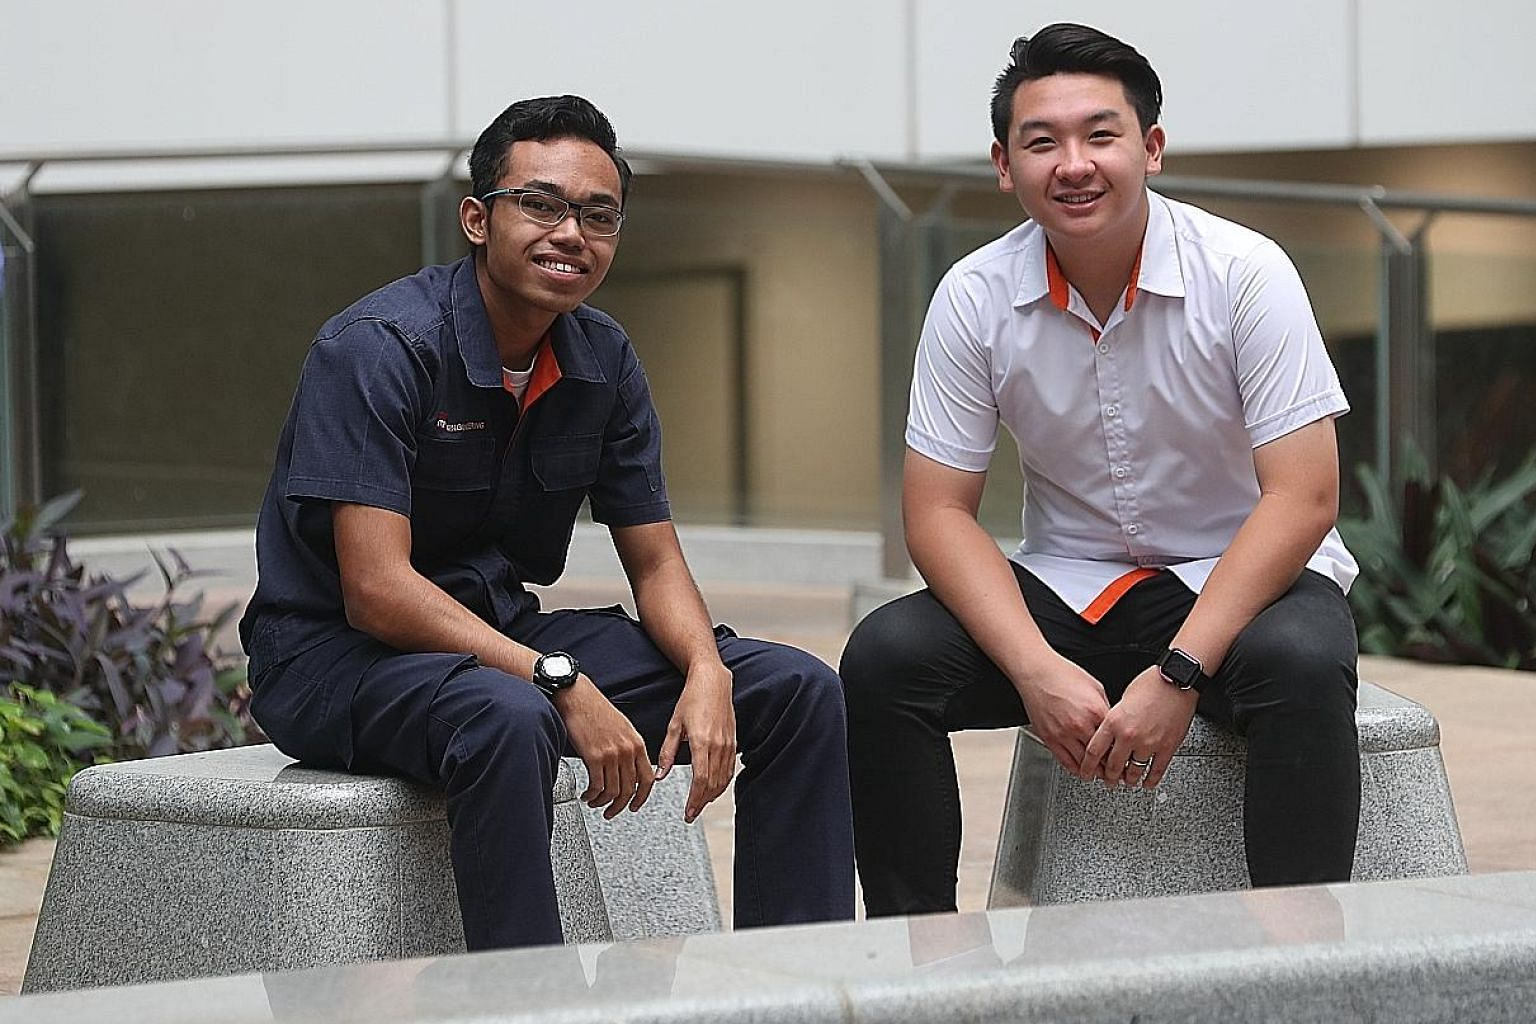 ITE second-year students Muhammad Akmal Abdul Rahman, who is pursuing a Higher Nitec in Mechanical Engineering, and Samuel Tan, who is studying for a Higher Nitec in Civil Engineering and Structural Engineering Design. Both opted for the ITE after th